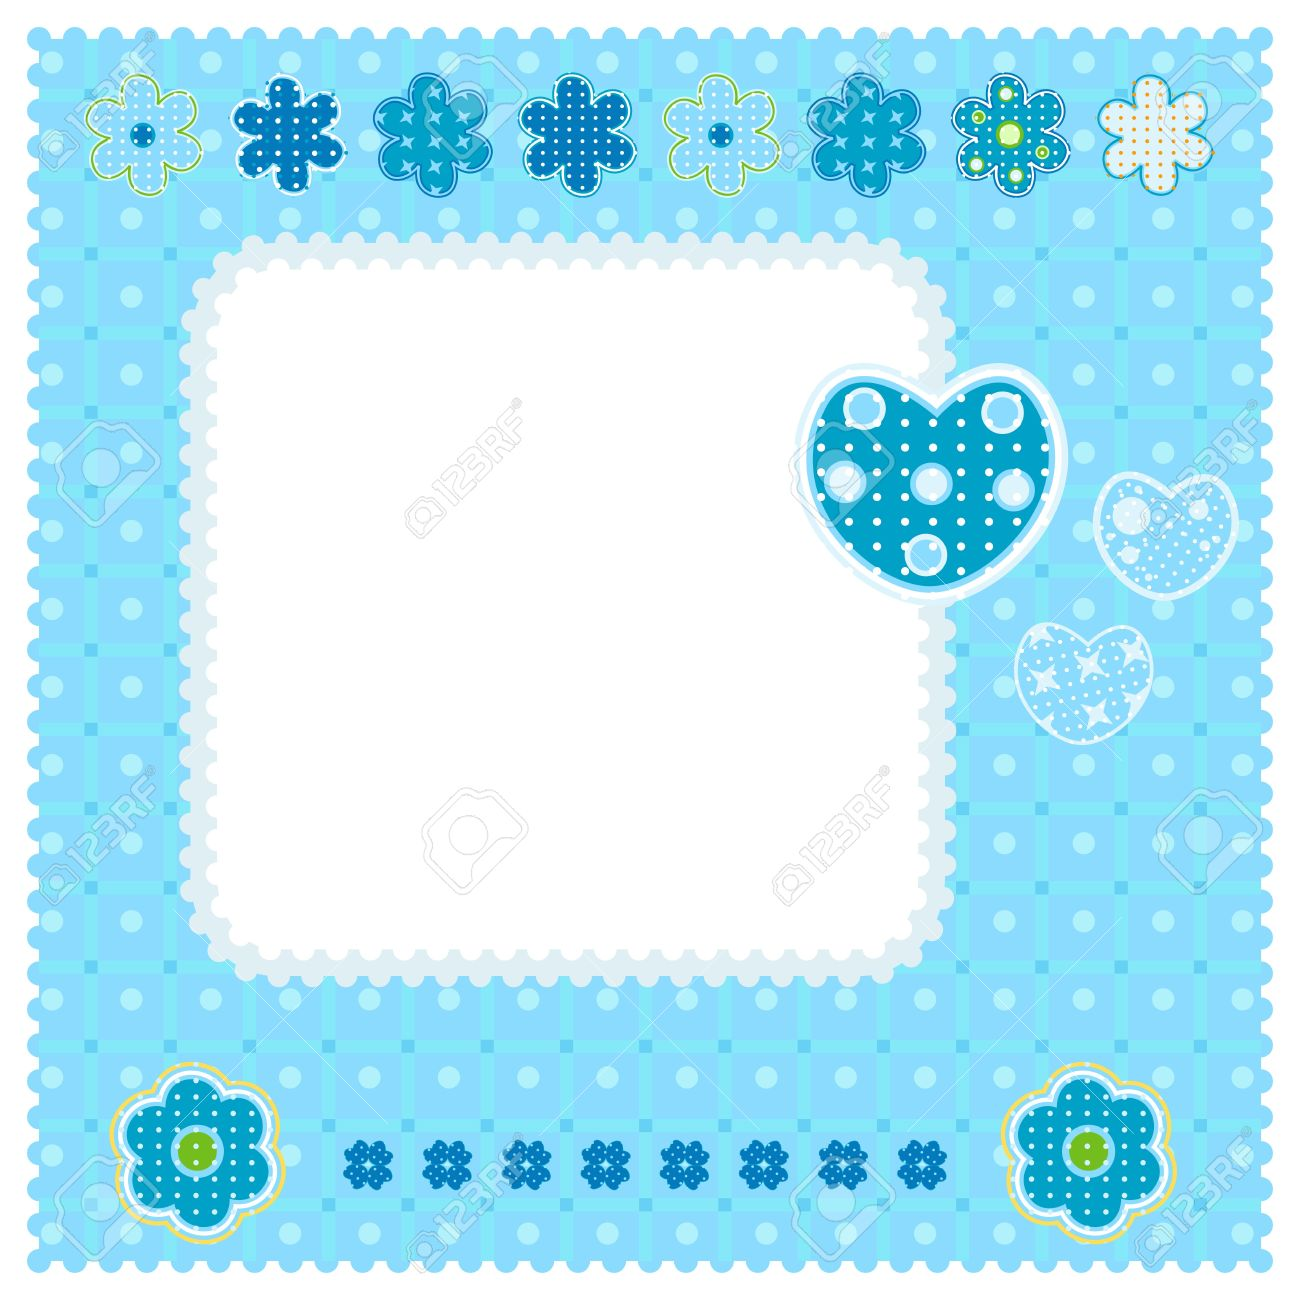 Sweet Blue Baby Boy Love Design Stock Photo, Picture And Royalty ...